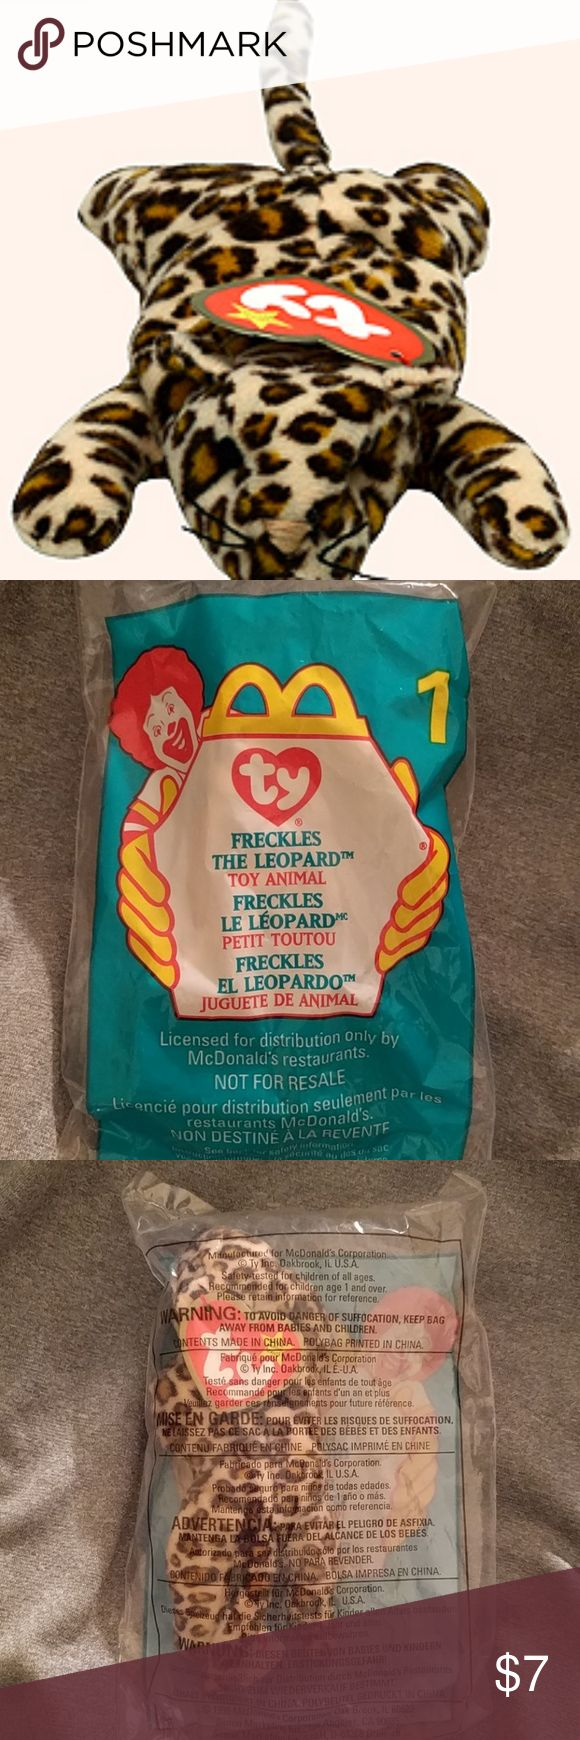 McDonald's + TY // beanie baby // #1 freckles McDonald's + TY Beanie Baby 1999 collection  #1 Freckles the Leopard  Rare!!!!! Nostalgic  In original packaging. Never opened.  The 1999 Happy Meal promotion at McDonalds ran from May 21 through June 17. The Teenie Beanie Babies were individually packaged in small plastic bags and given to customers who purchased a Happy Meal or other food item. There were 12 different Teenie Beanie Baby animals in the first phase of the promotion that ran from…